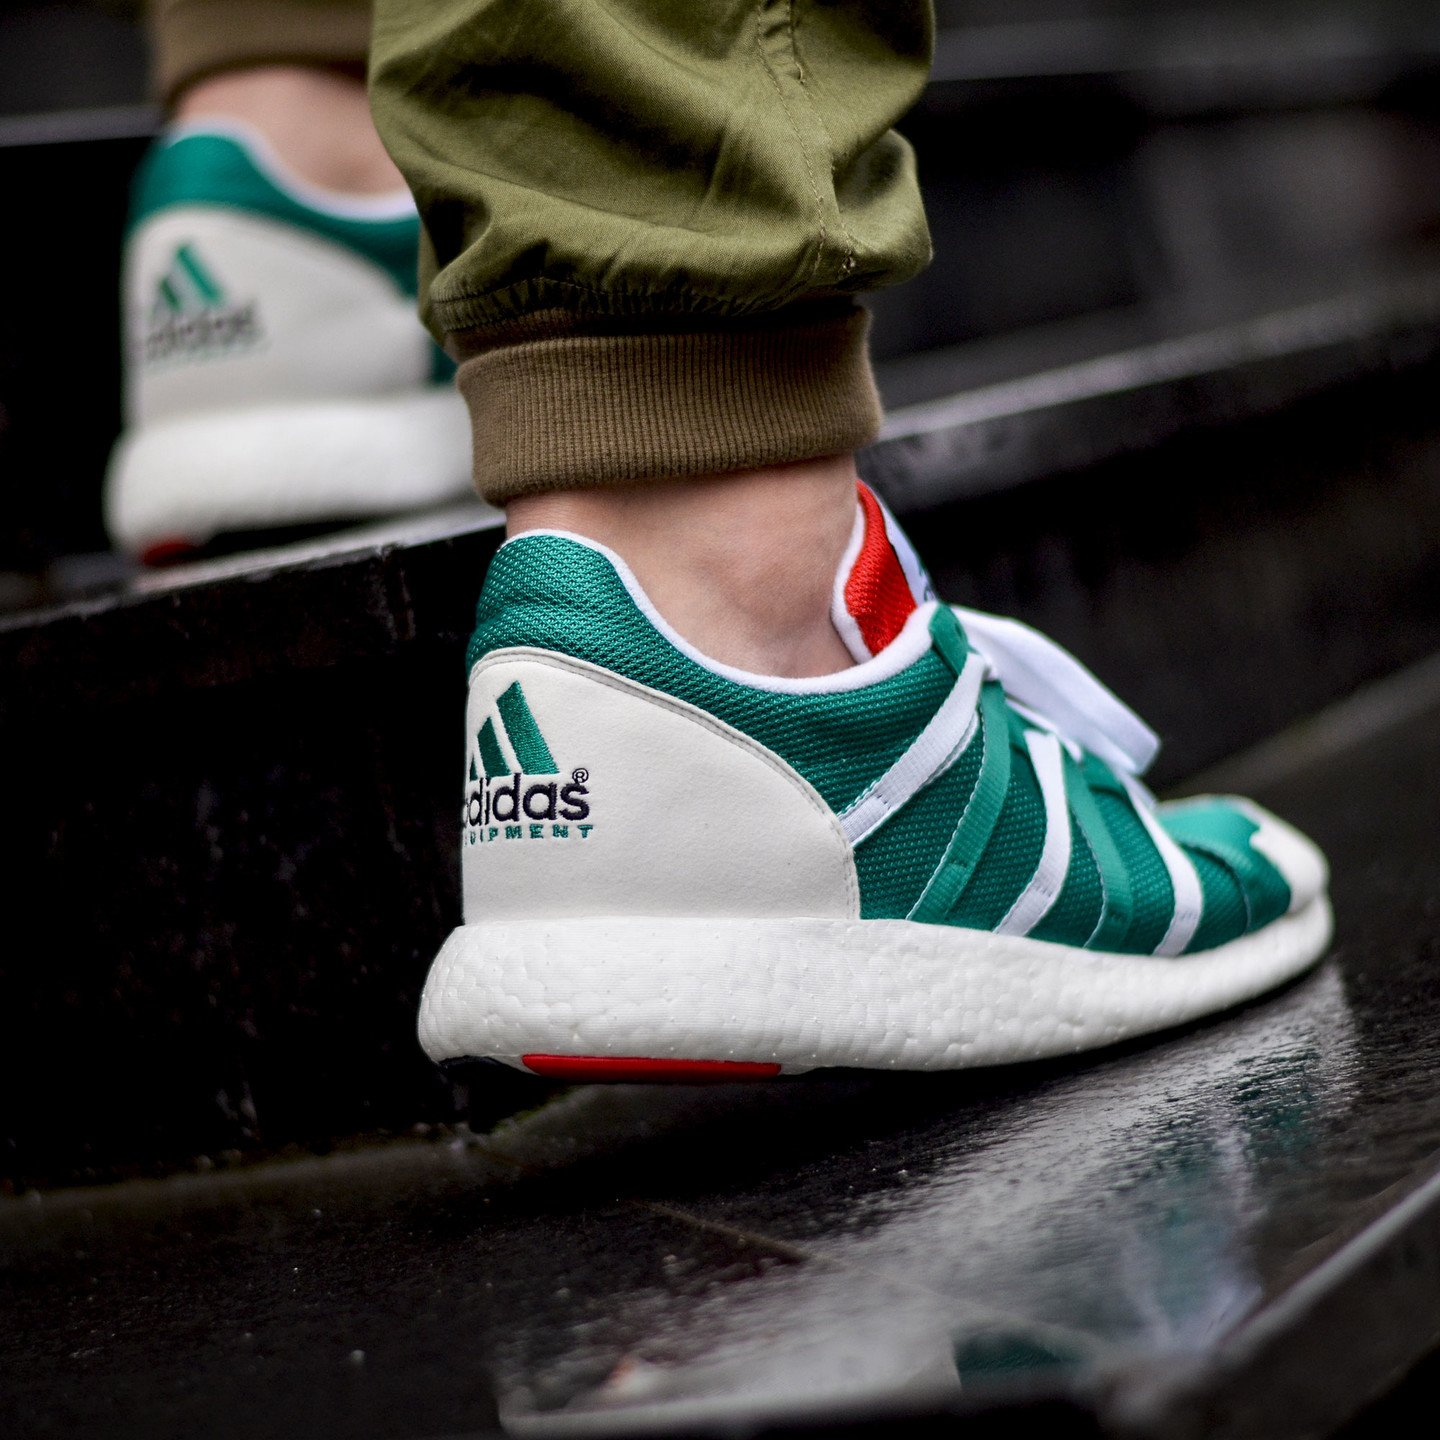 Adidas Equipment Racing 93/16 Sub Green / Ftw White / Col Red S79122-46.66